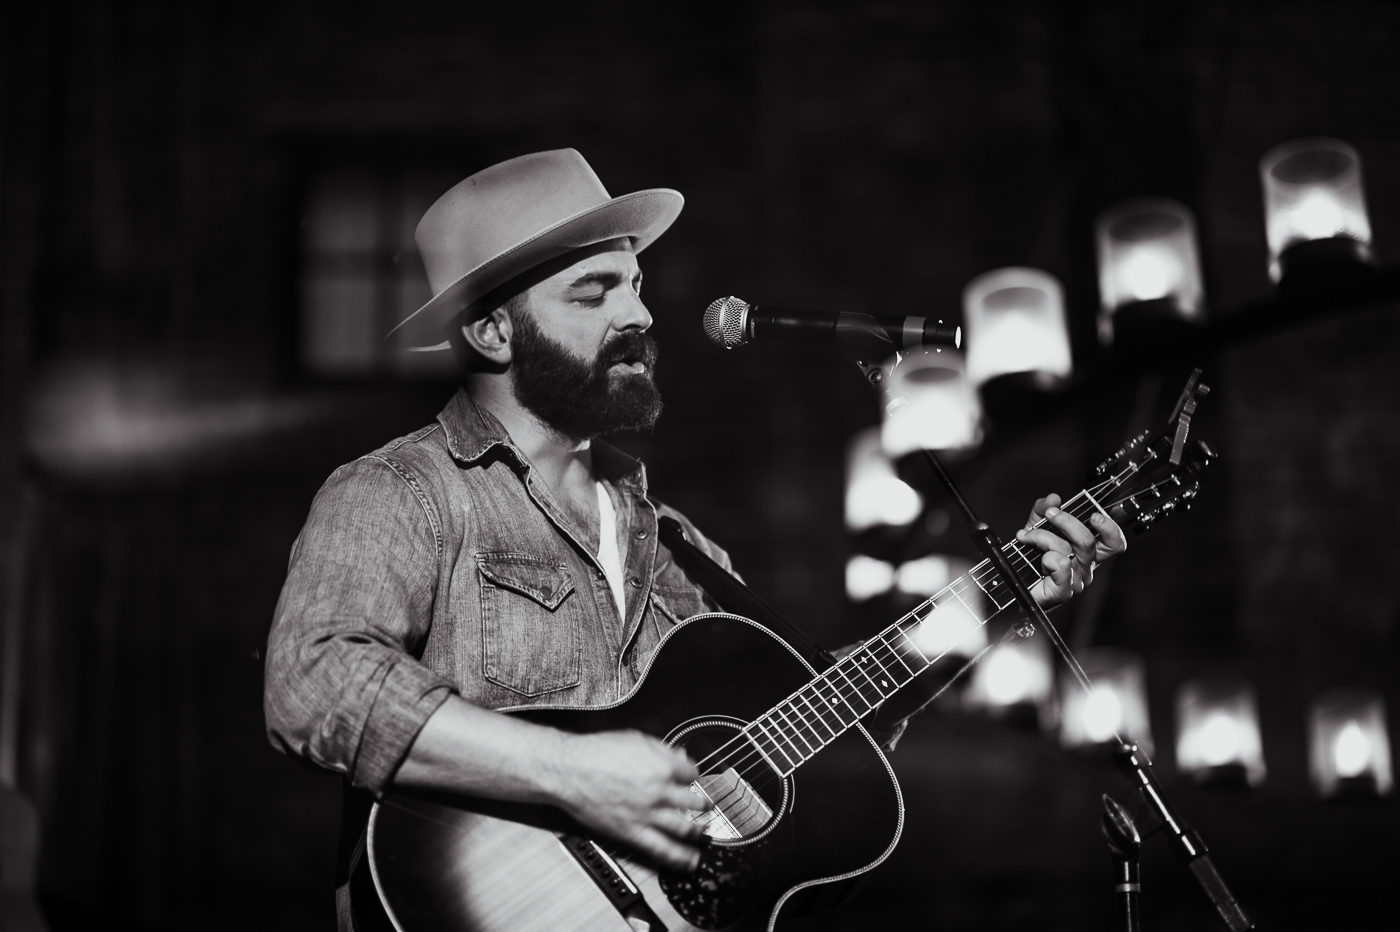 Drew Holcomb performs in the Barrel Room on Saturday afternoon.